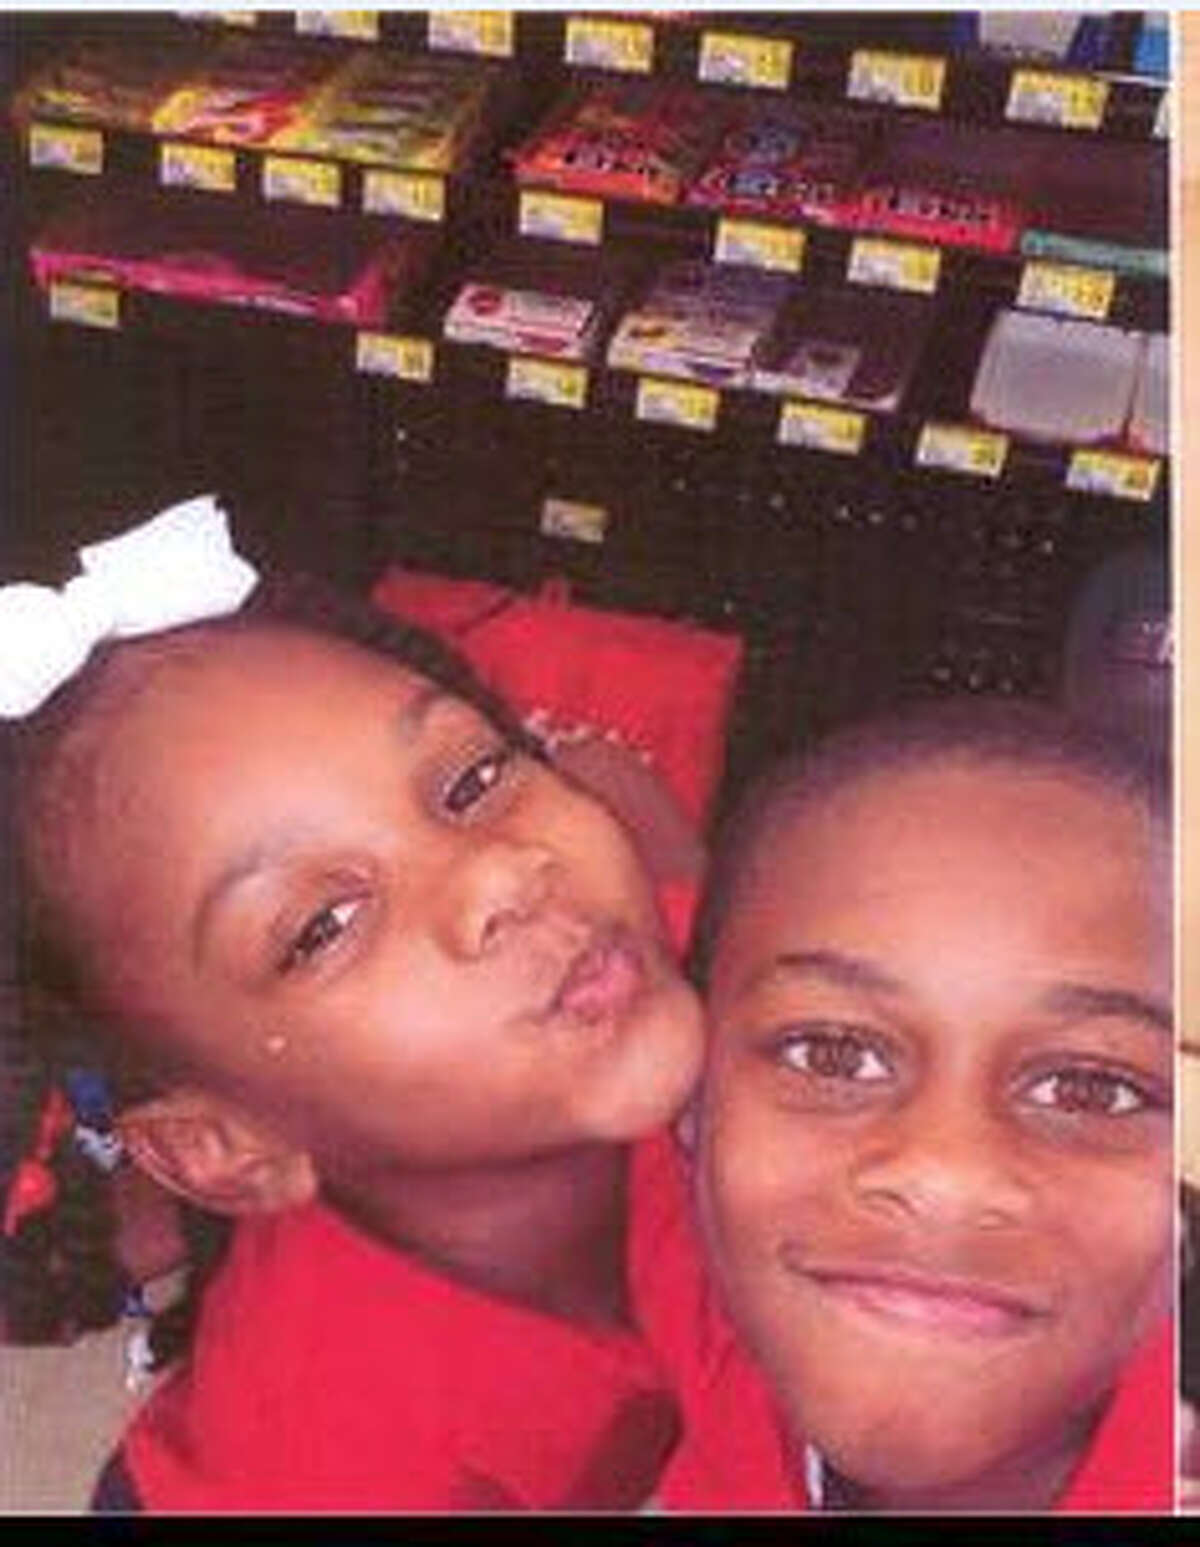 An Amber Alert has been issued for Jacqulin Ballard, 8, and Romon Reese, 10, who were last seen in Houston on Nov. 23, 2016.